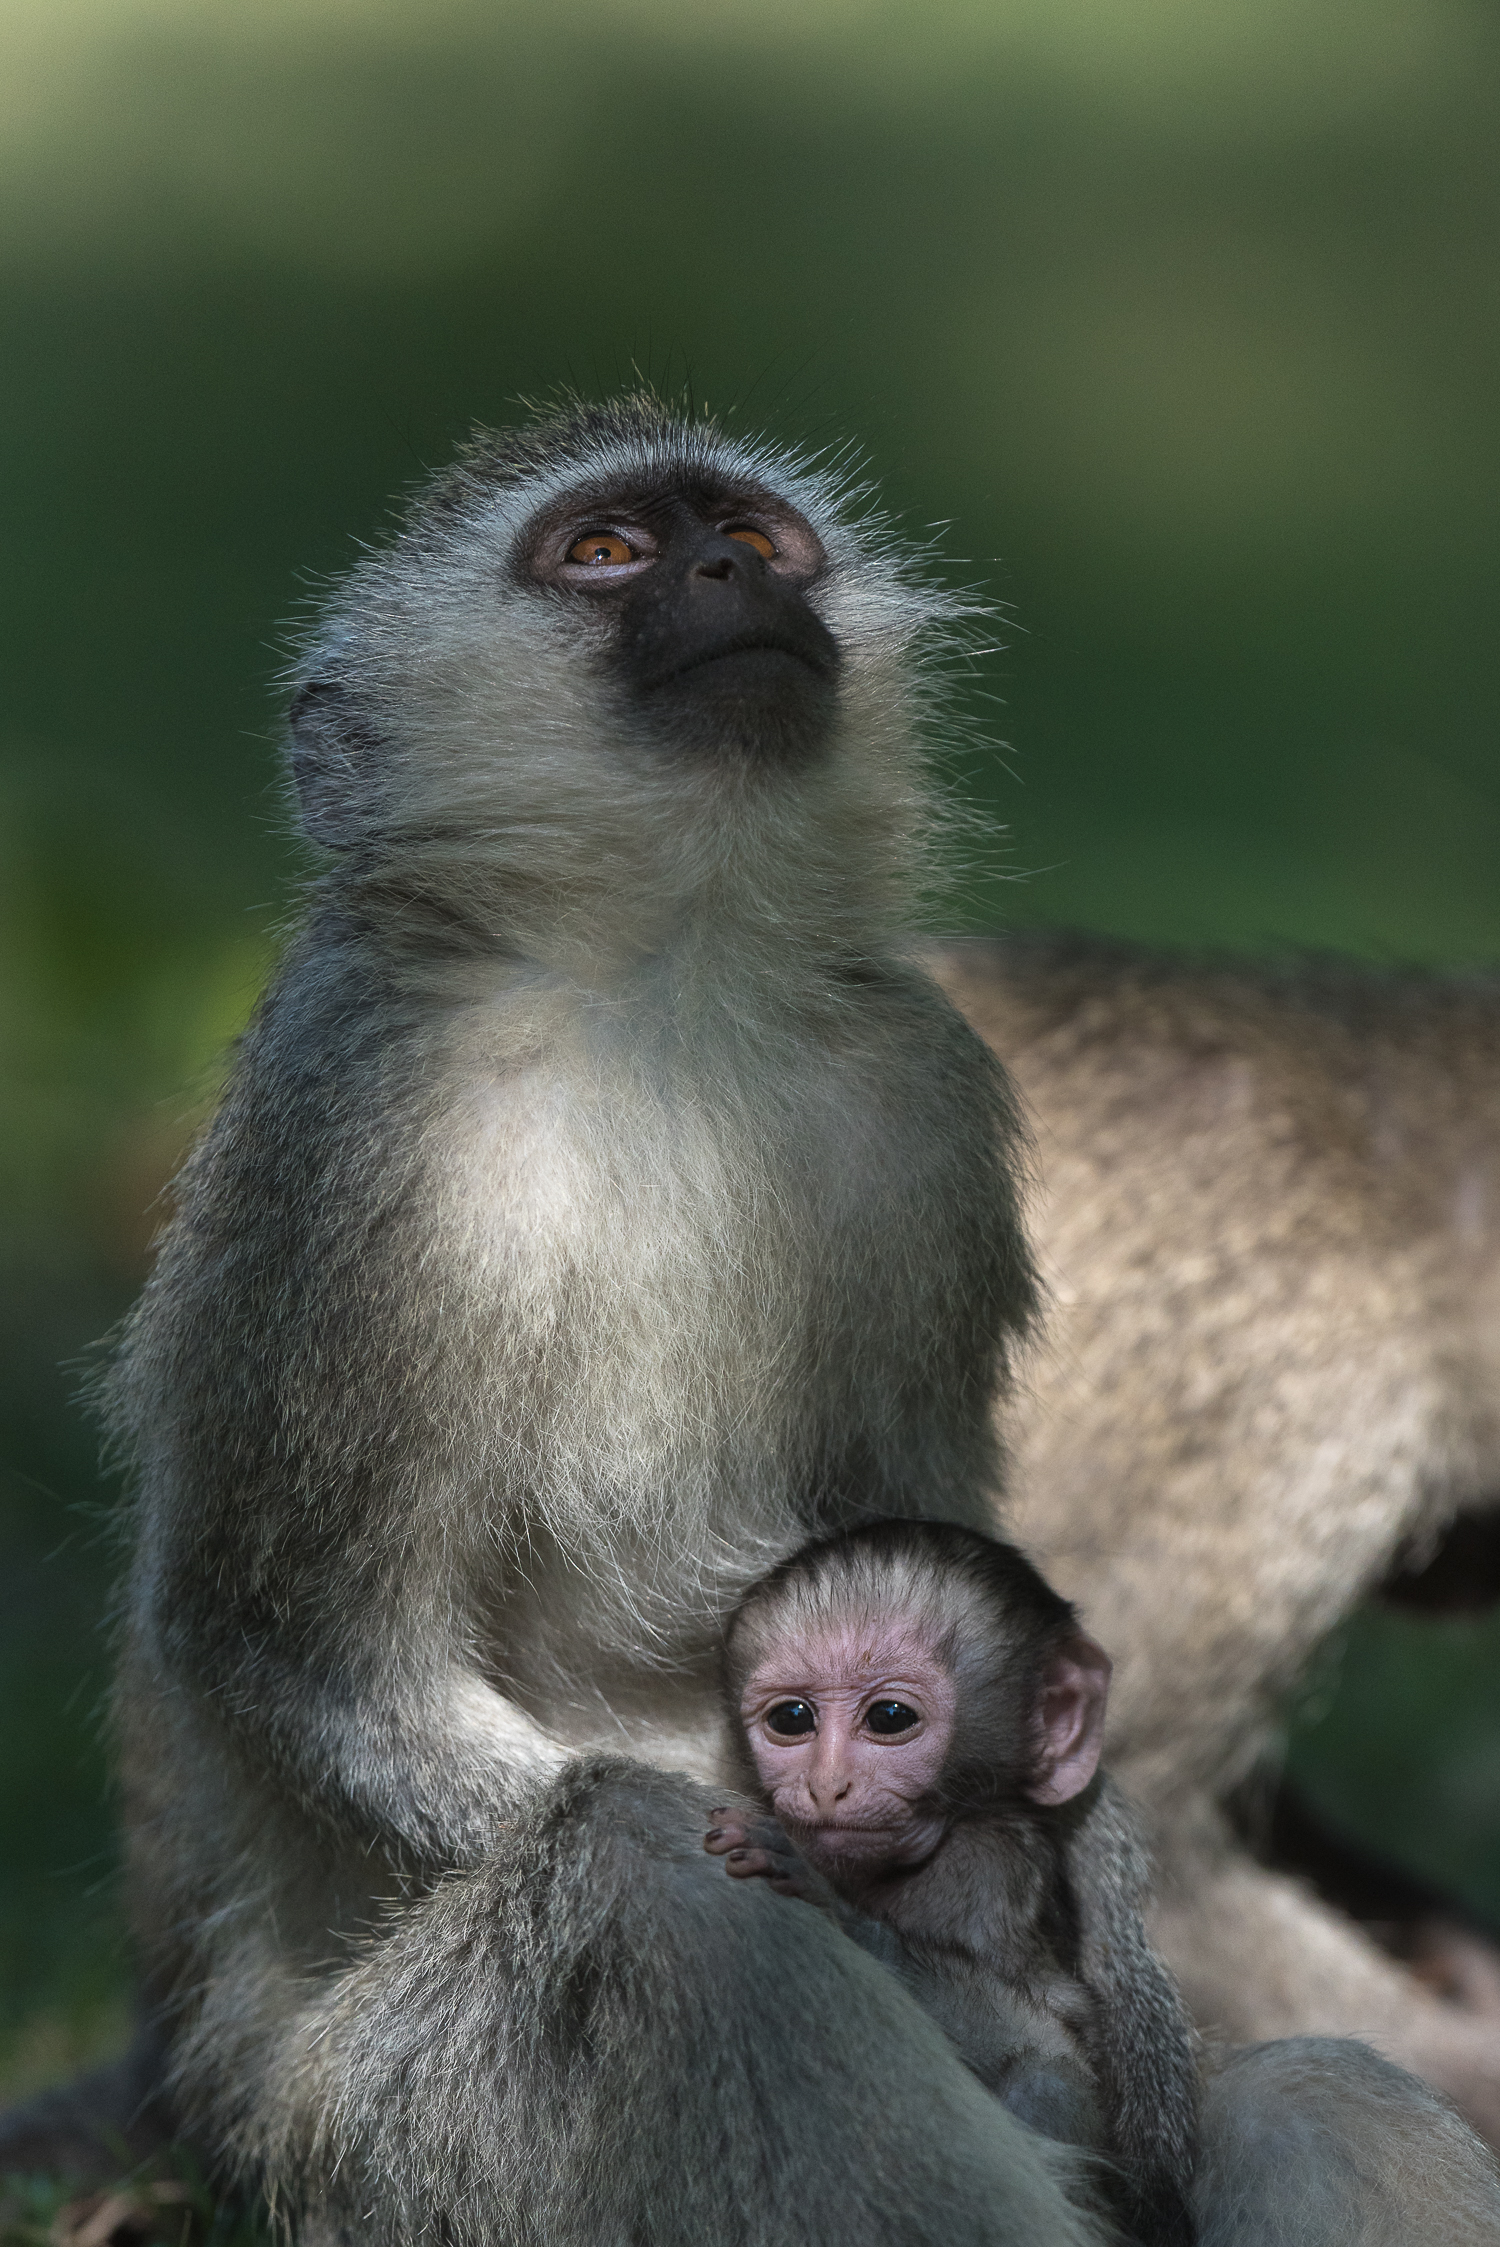 Giving thanks. A vervet monkey mother looks skyward a one of many newborns scans its unfamiliar surroundings.